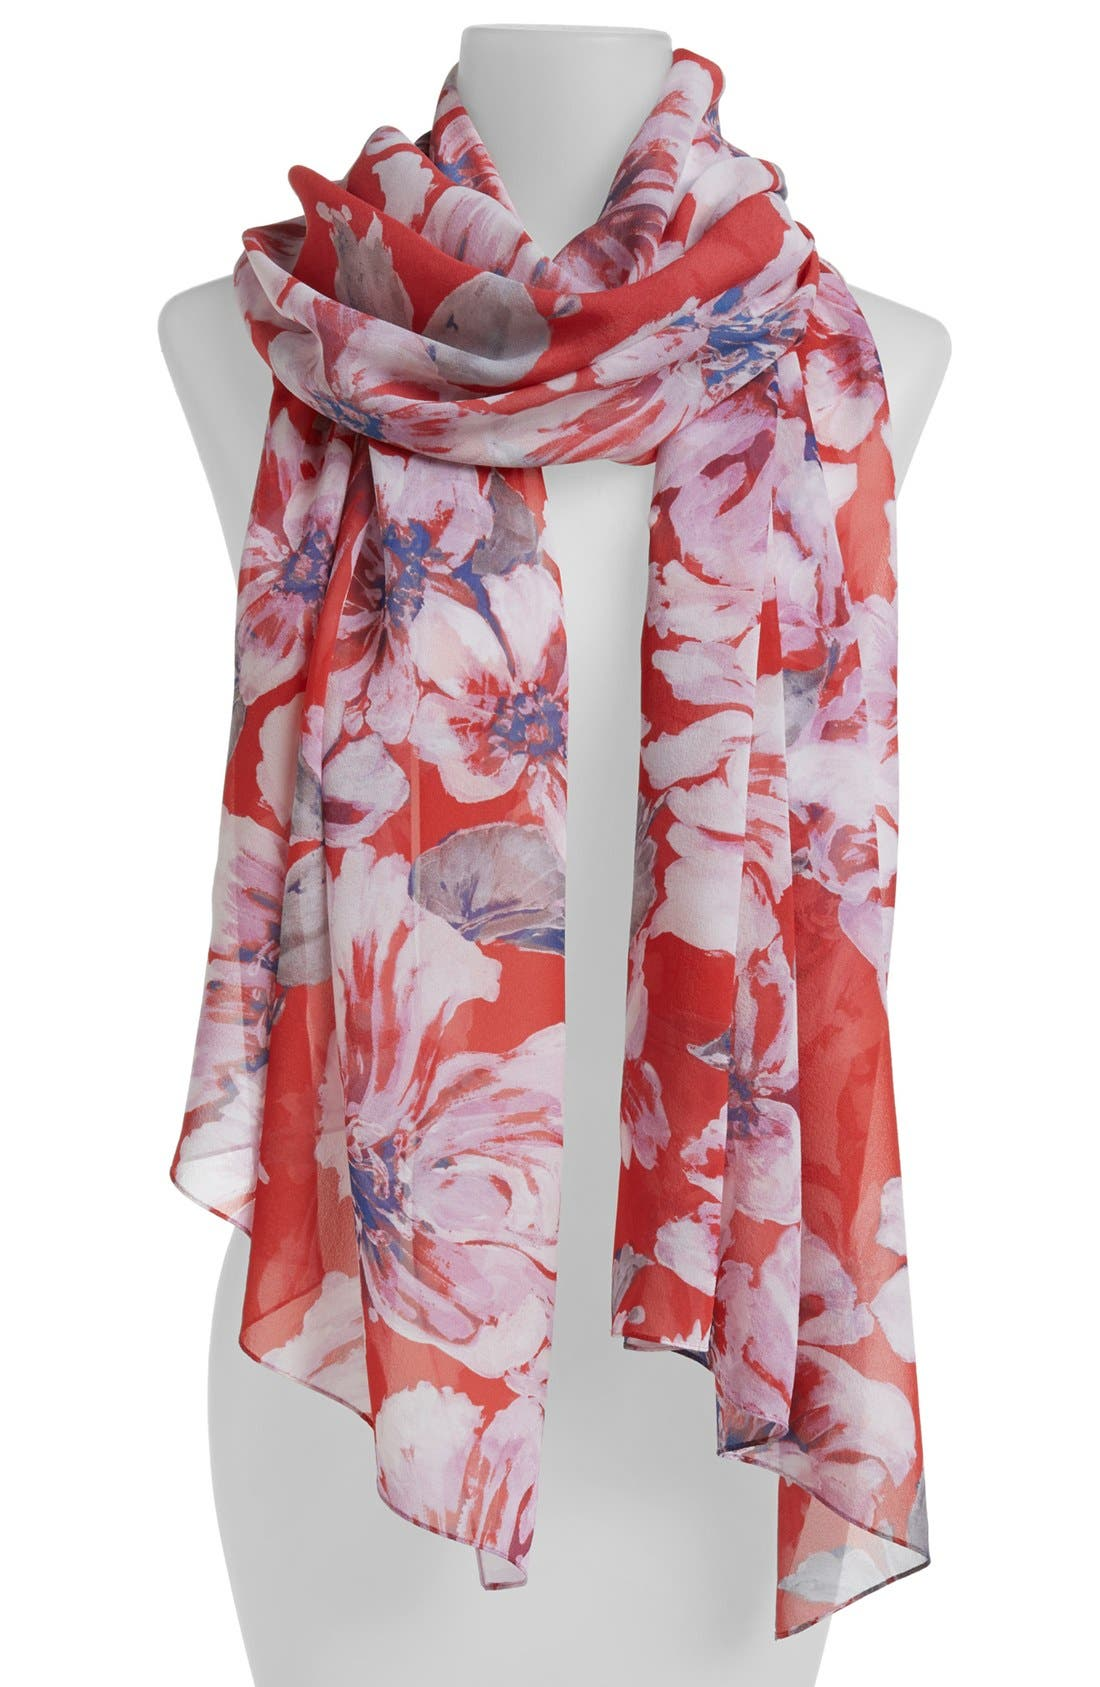 Alternate Image 1 Selected - St. John Collection Vibrant Floral Print Silk Georgette Scarf